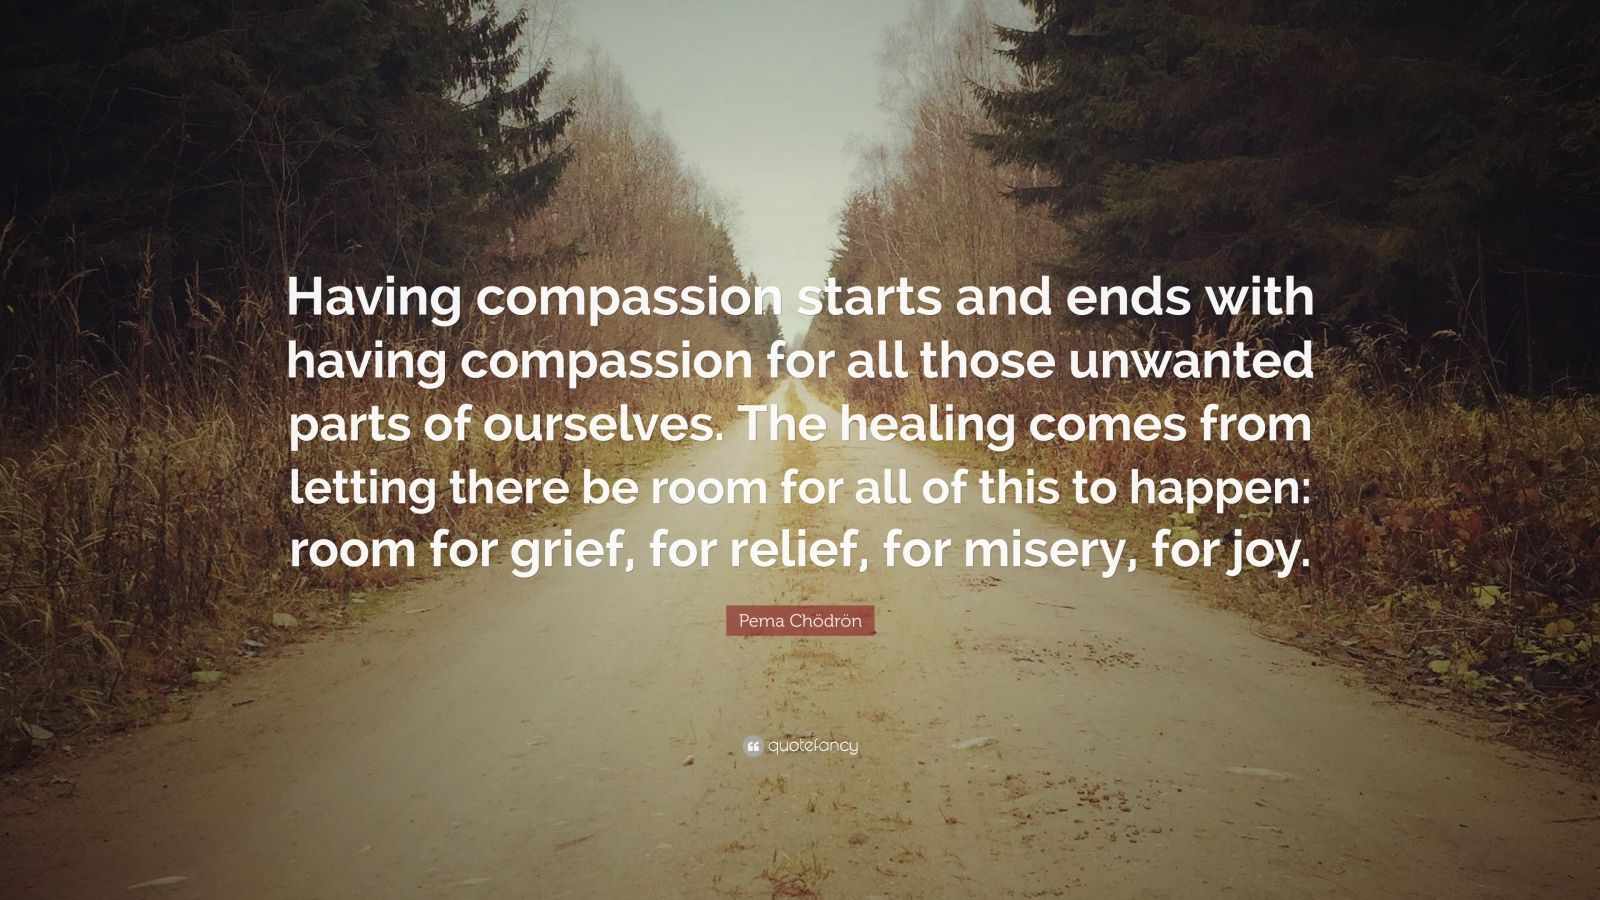 "Pema Chödrön Quote: ""Having compassion starts and ends with having compassion for all those unwanted parts of ourselves. The healing comes from letting there be room for all of this to happen: room for grief, for relief, for misery, for joy."""